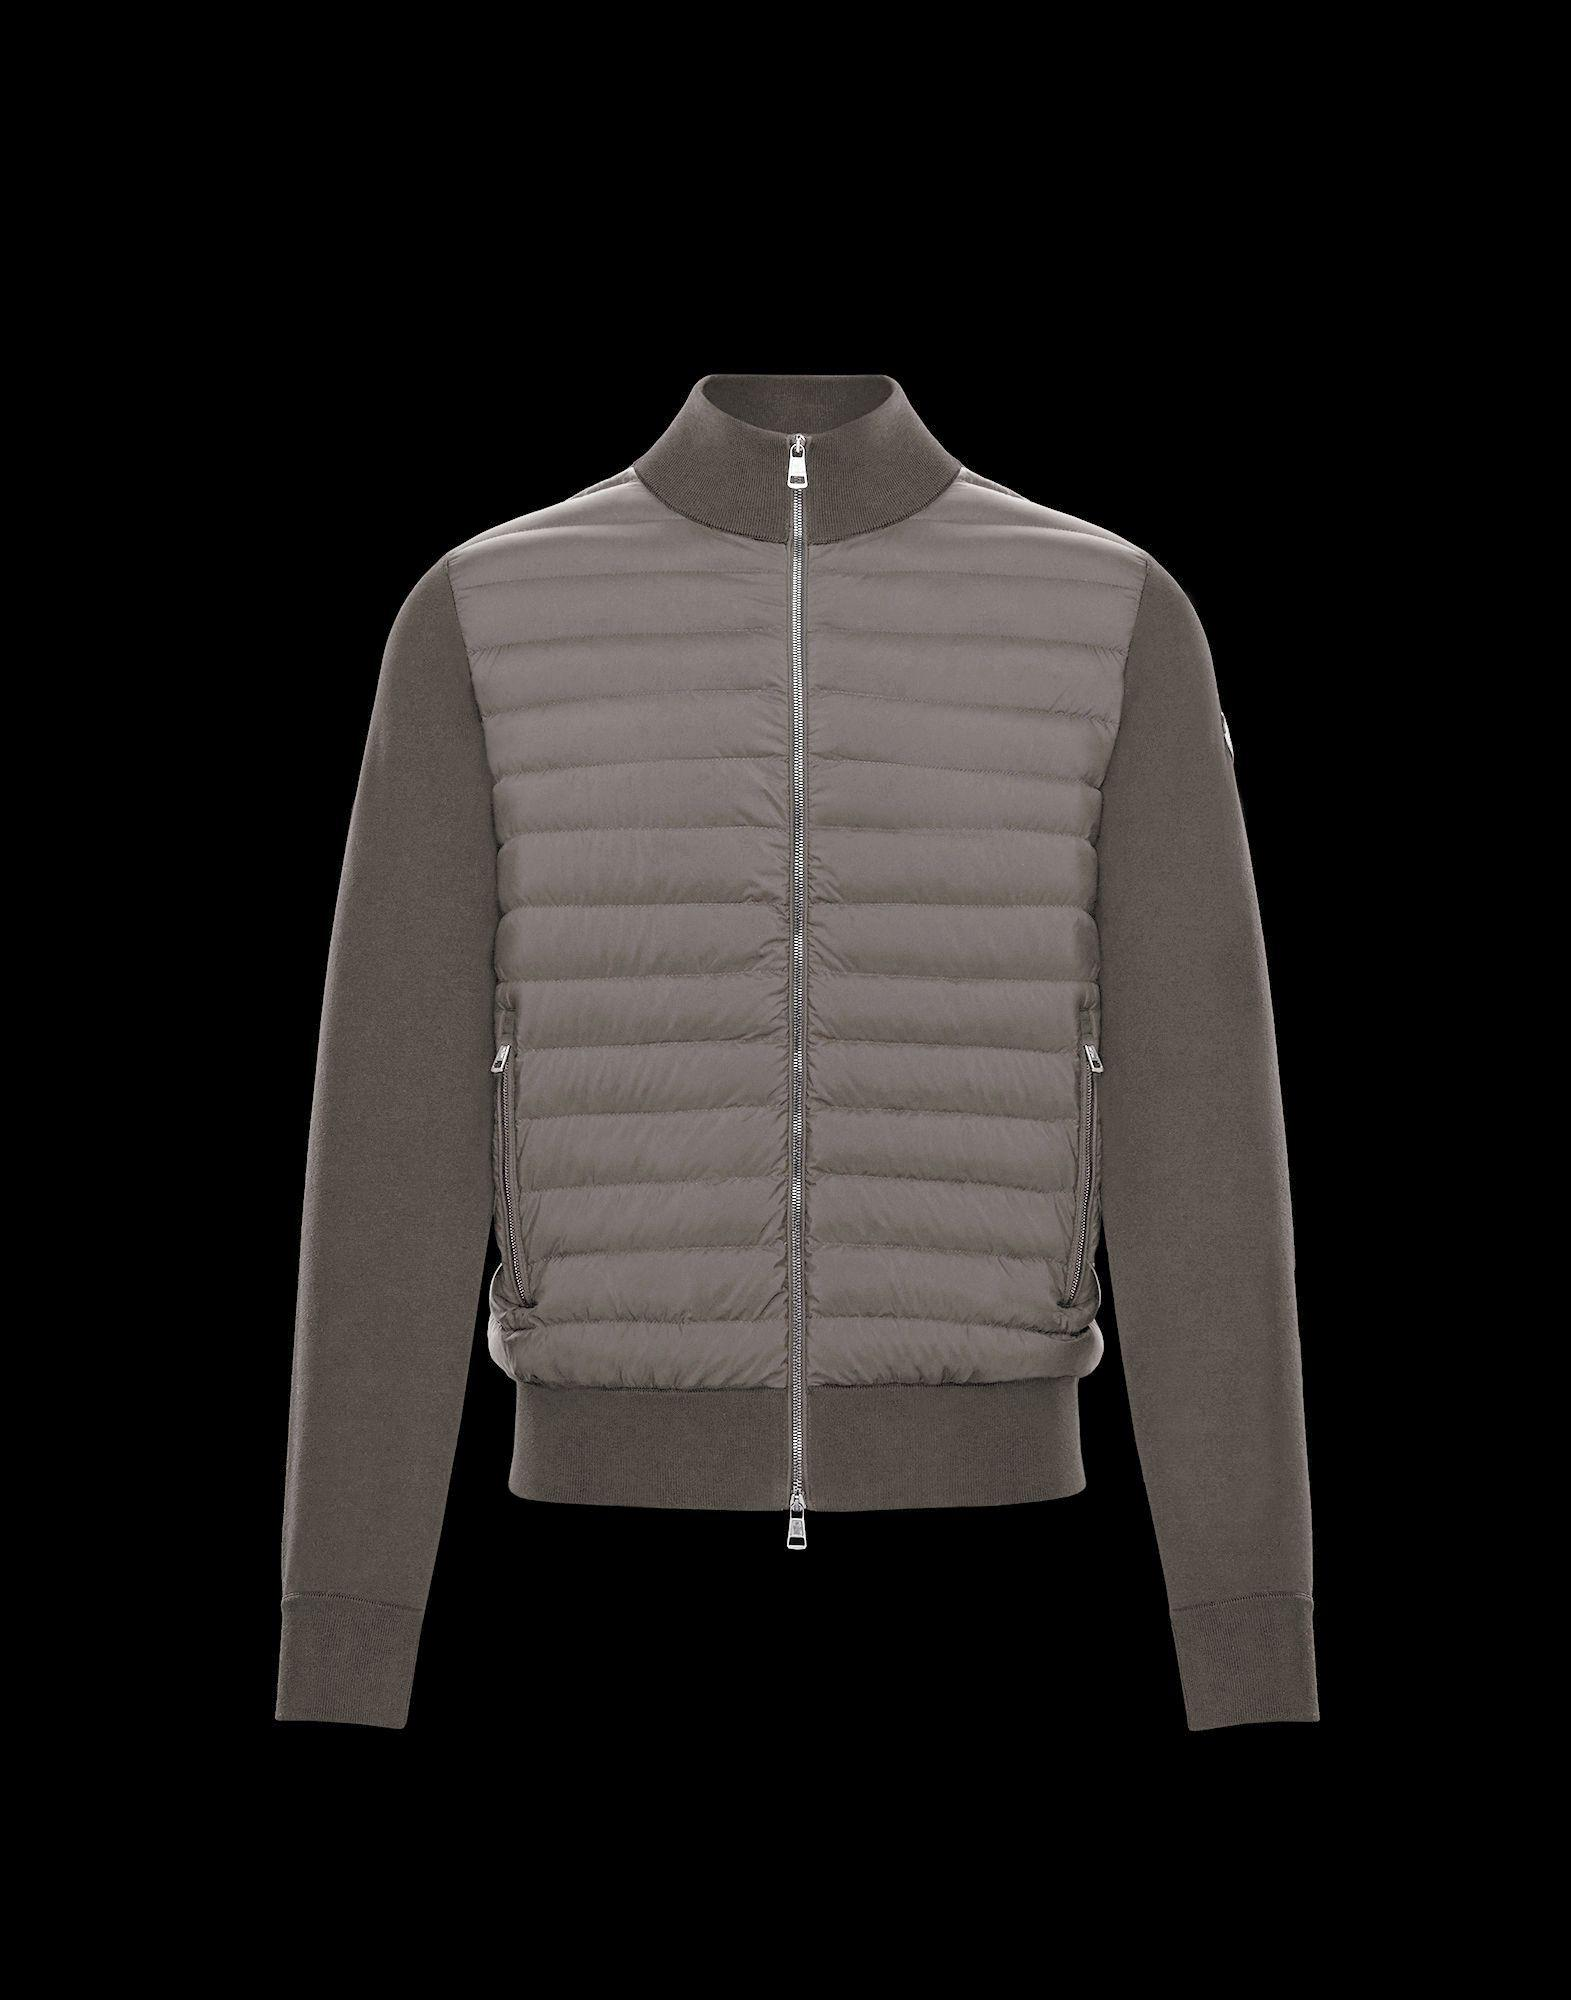 ad0c8c91e208 Moncler Cardigan in Gray for Men - Lyst